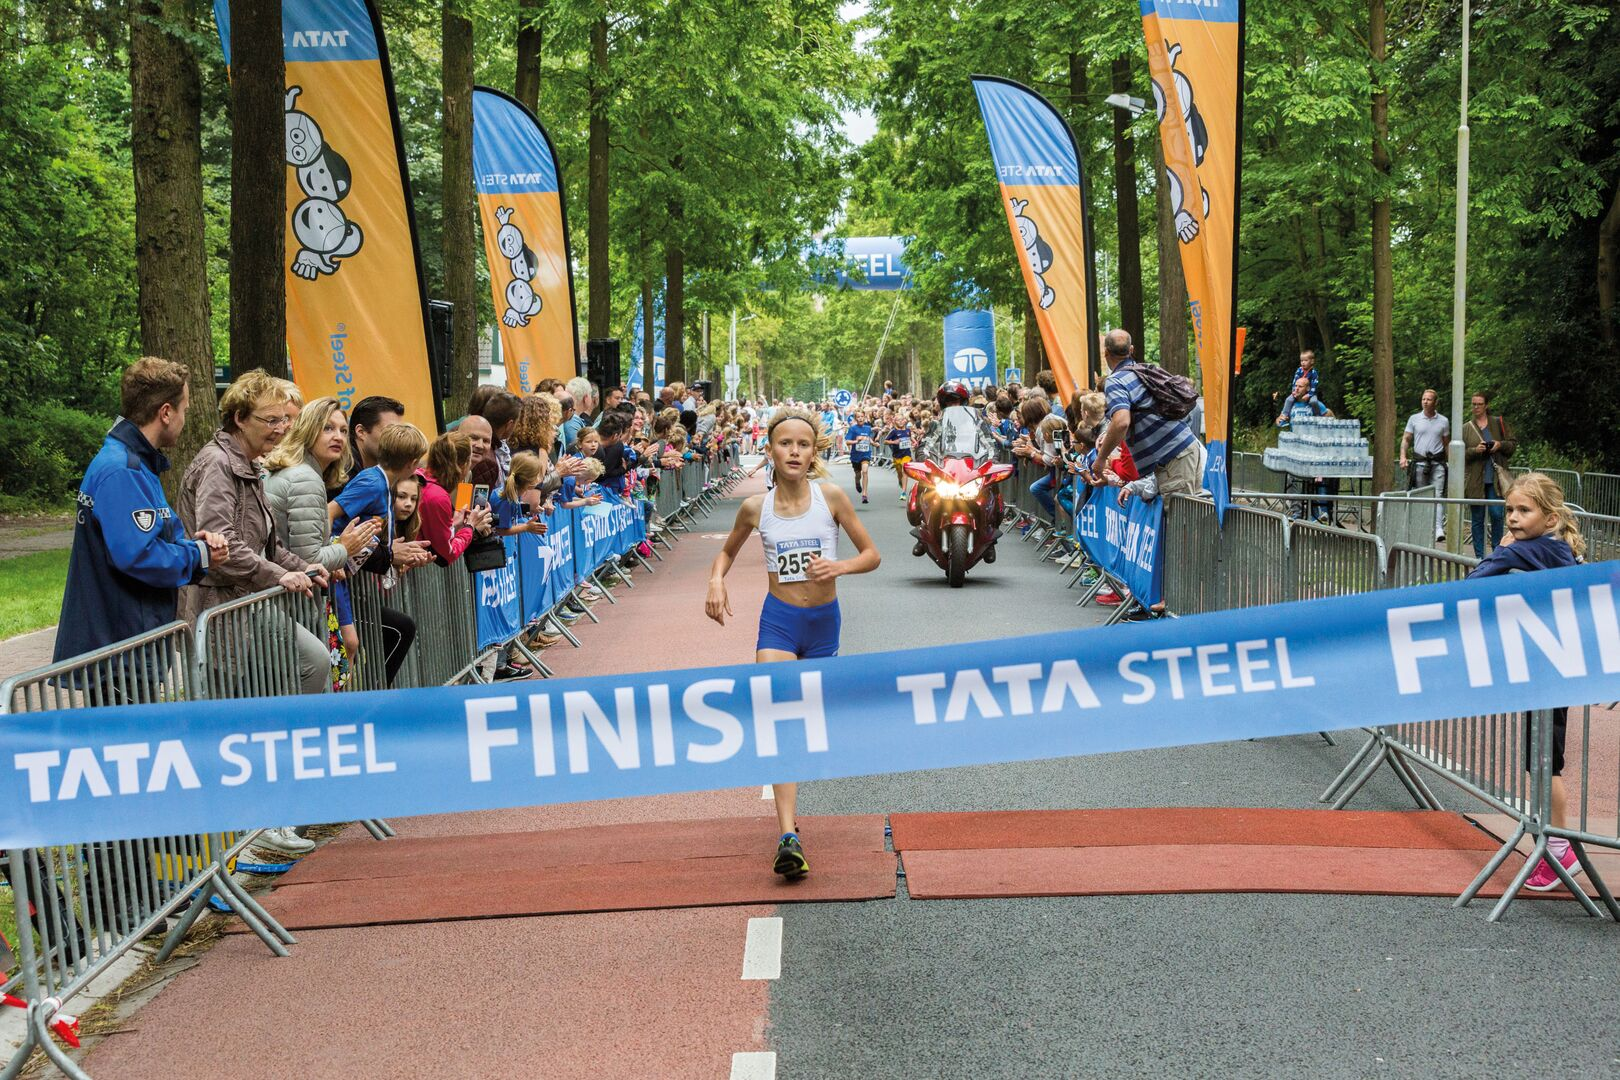 Tata Steel sponsored run